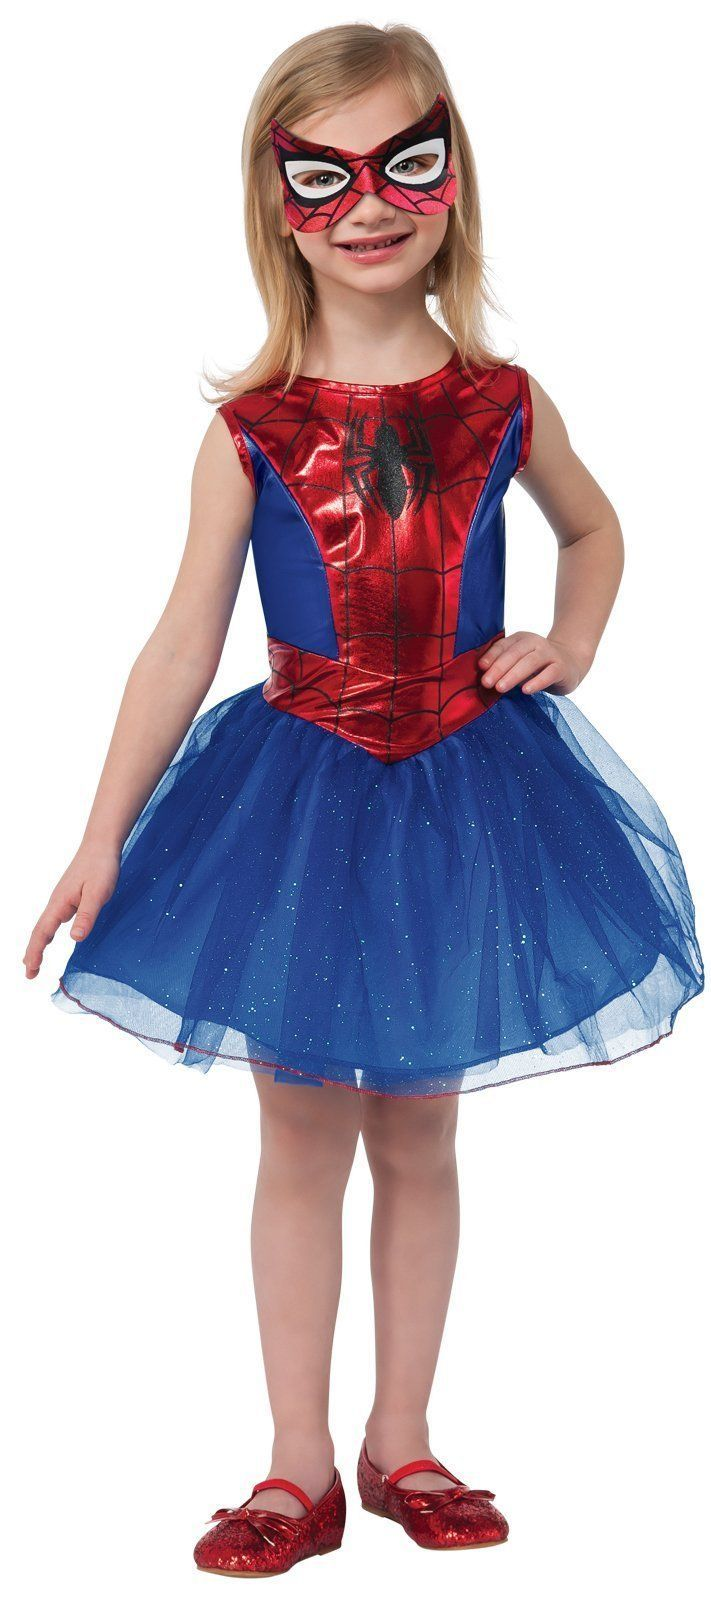 ce3e5f2de Marvel - Spider-Girl Costume